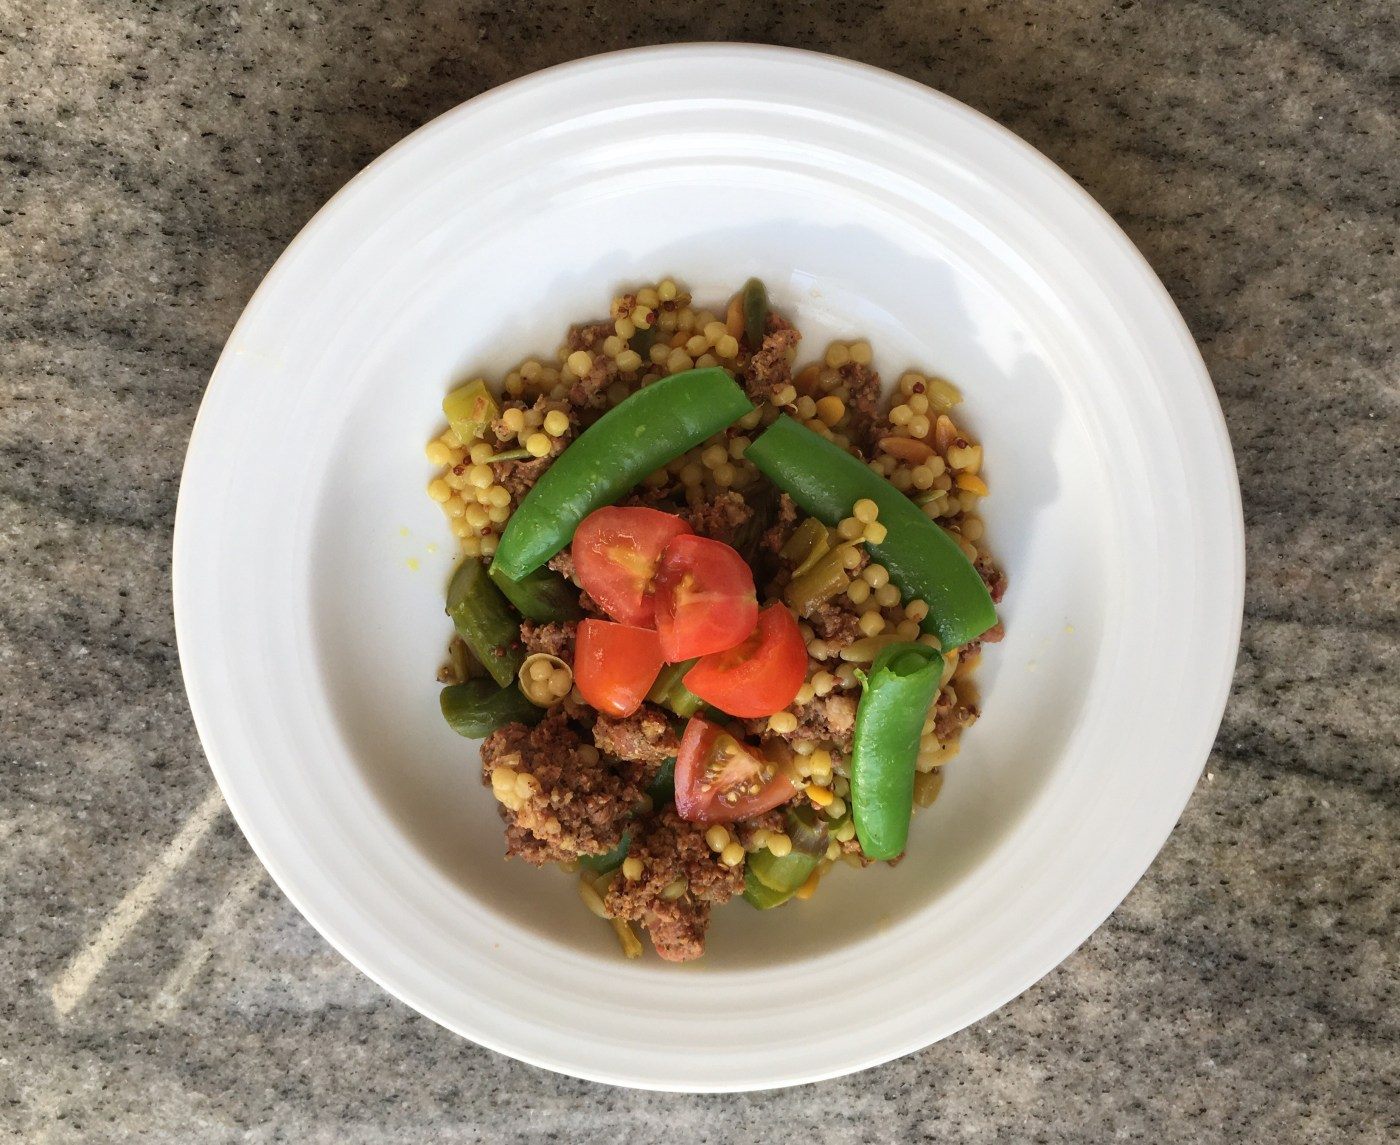 Cous cous with sausage, asparagus, sugar snap peas & topped with grape tomatoes.